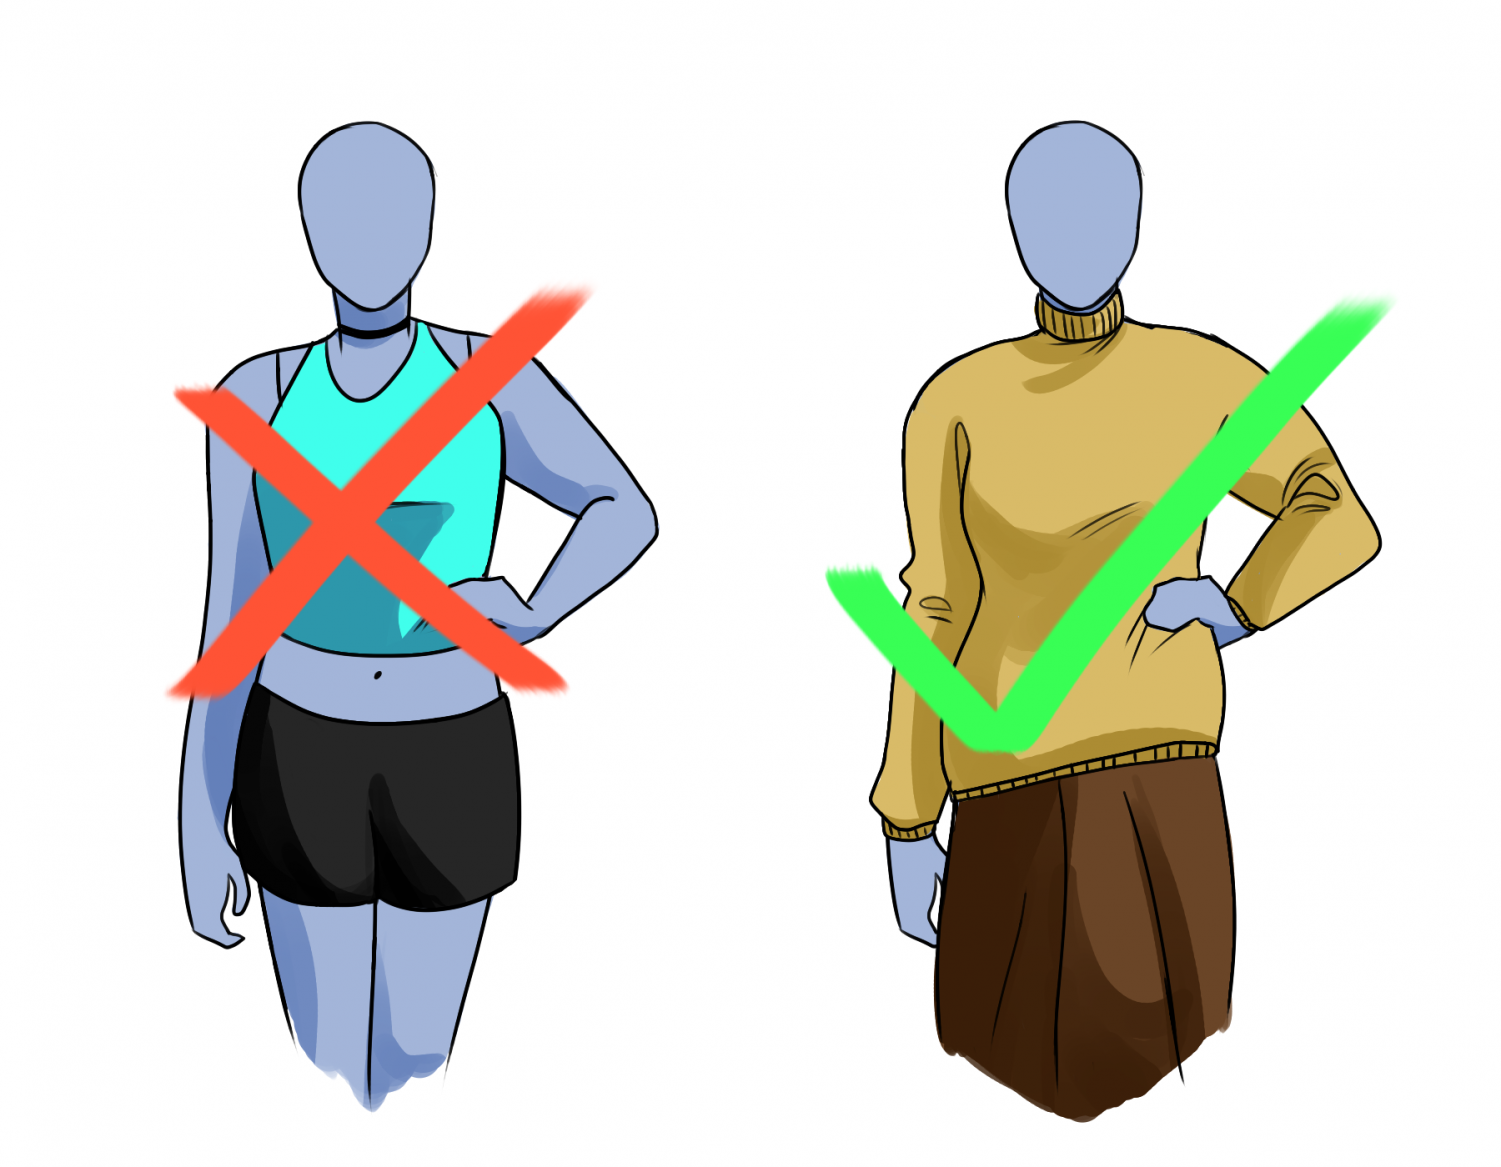 The outfit on the left is deemed to be inappropriate by RM's dress code, but certain students tend to be more targeted than others.